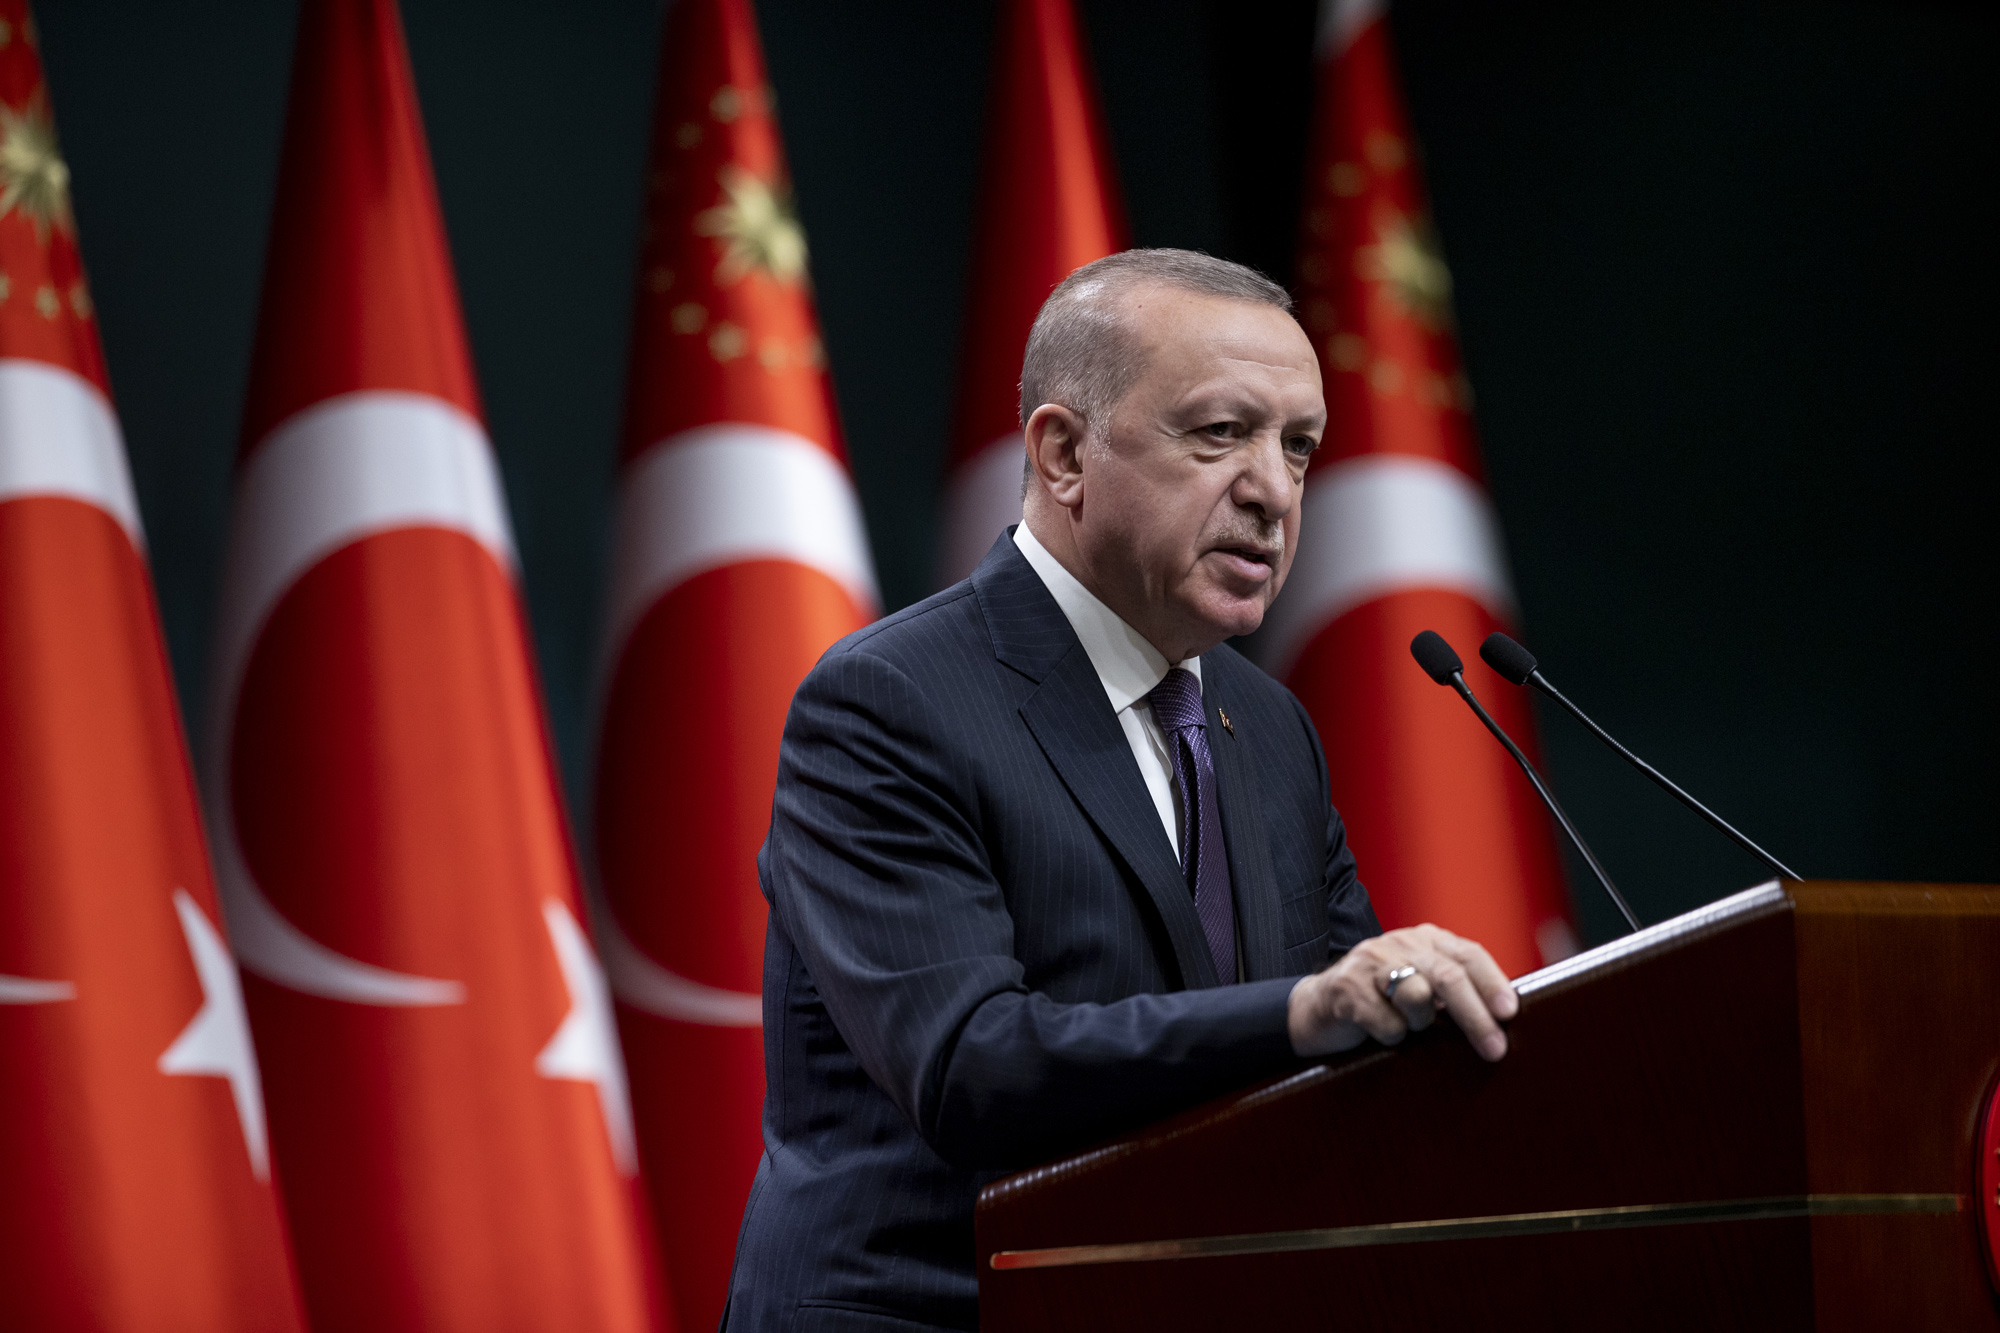 Turkish President Recep Tayyip Erdogan makes a statement during a press conference at the Presidential Complex in Ankara, Turkey, on April 26.